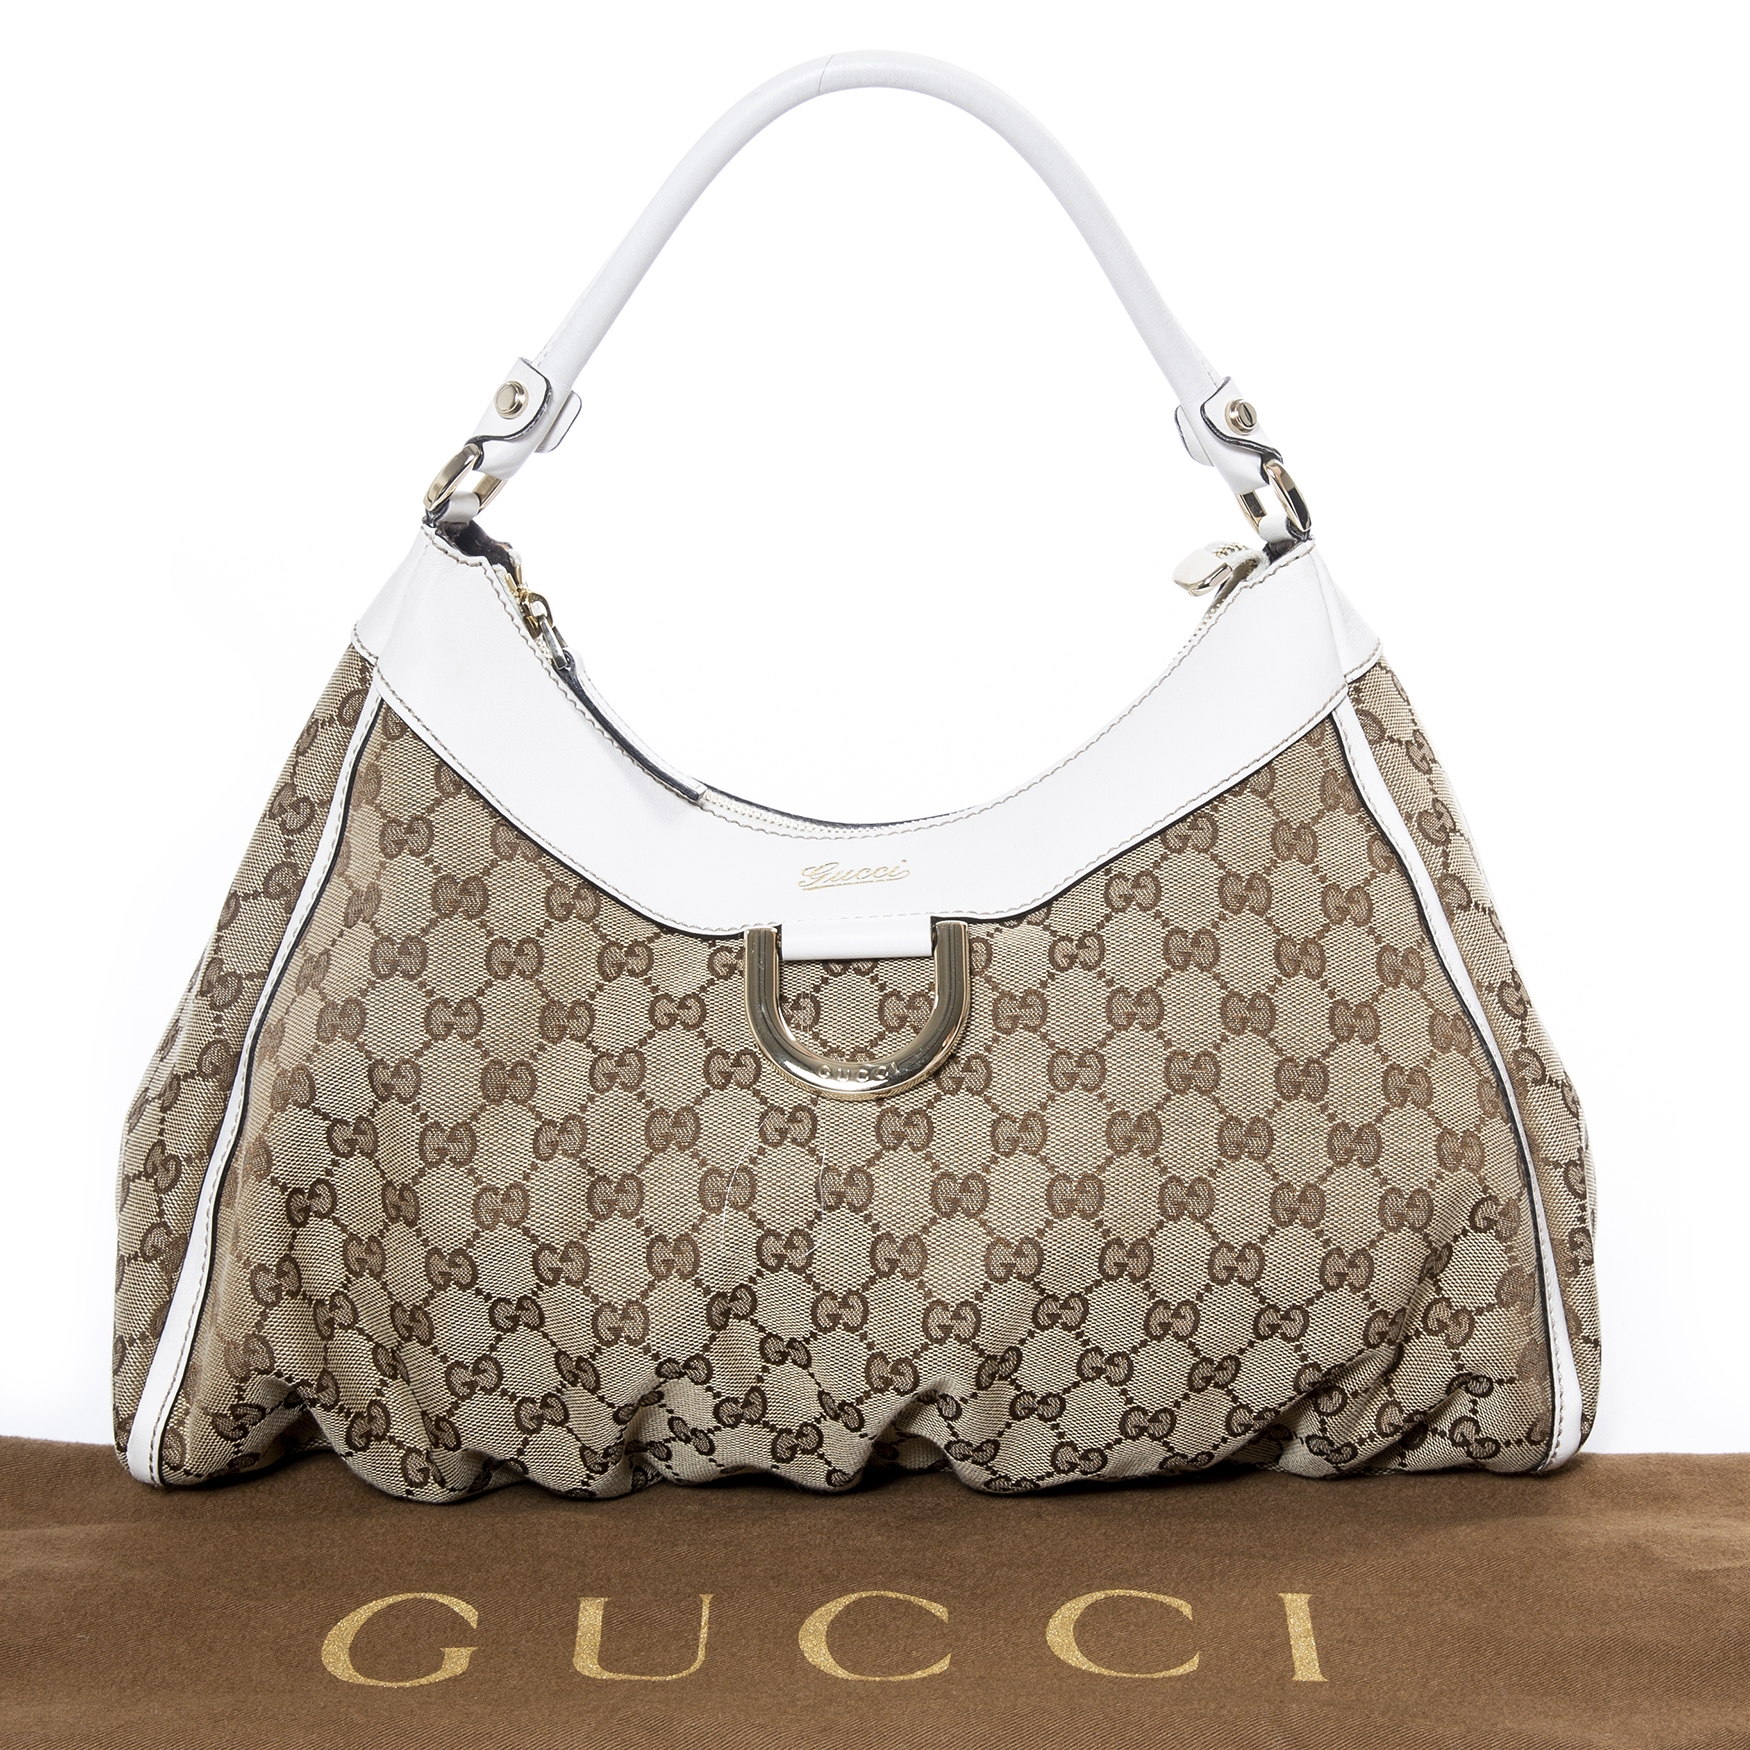 ... gucci d ring hobo bag now for sale at labellov vintage fashion webshop  belgium 2f81469b5828